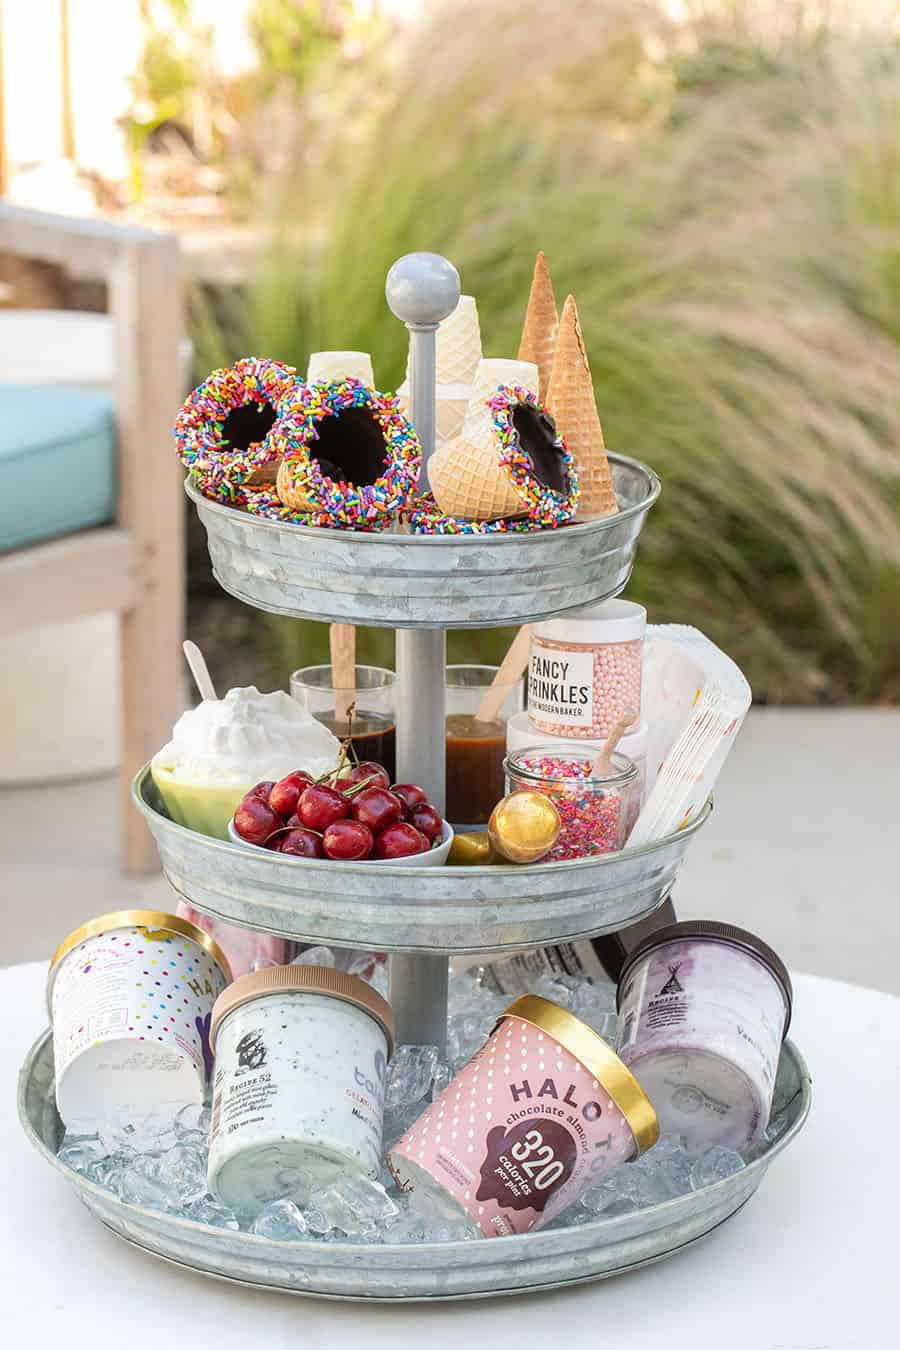 Tiered Galvanized Tray with ice cream cones on top. cherries and toppings in the center and ice cream on the bottom.